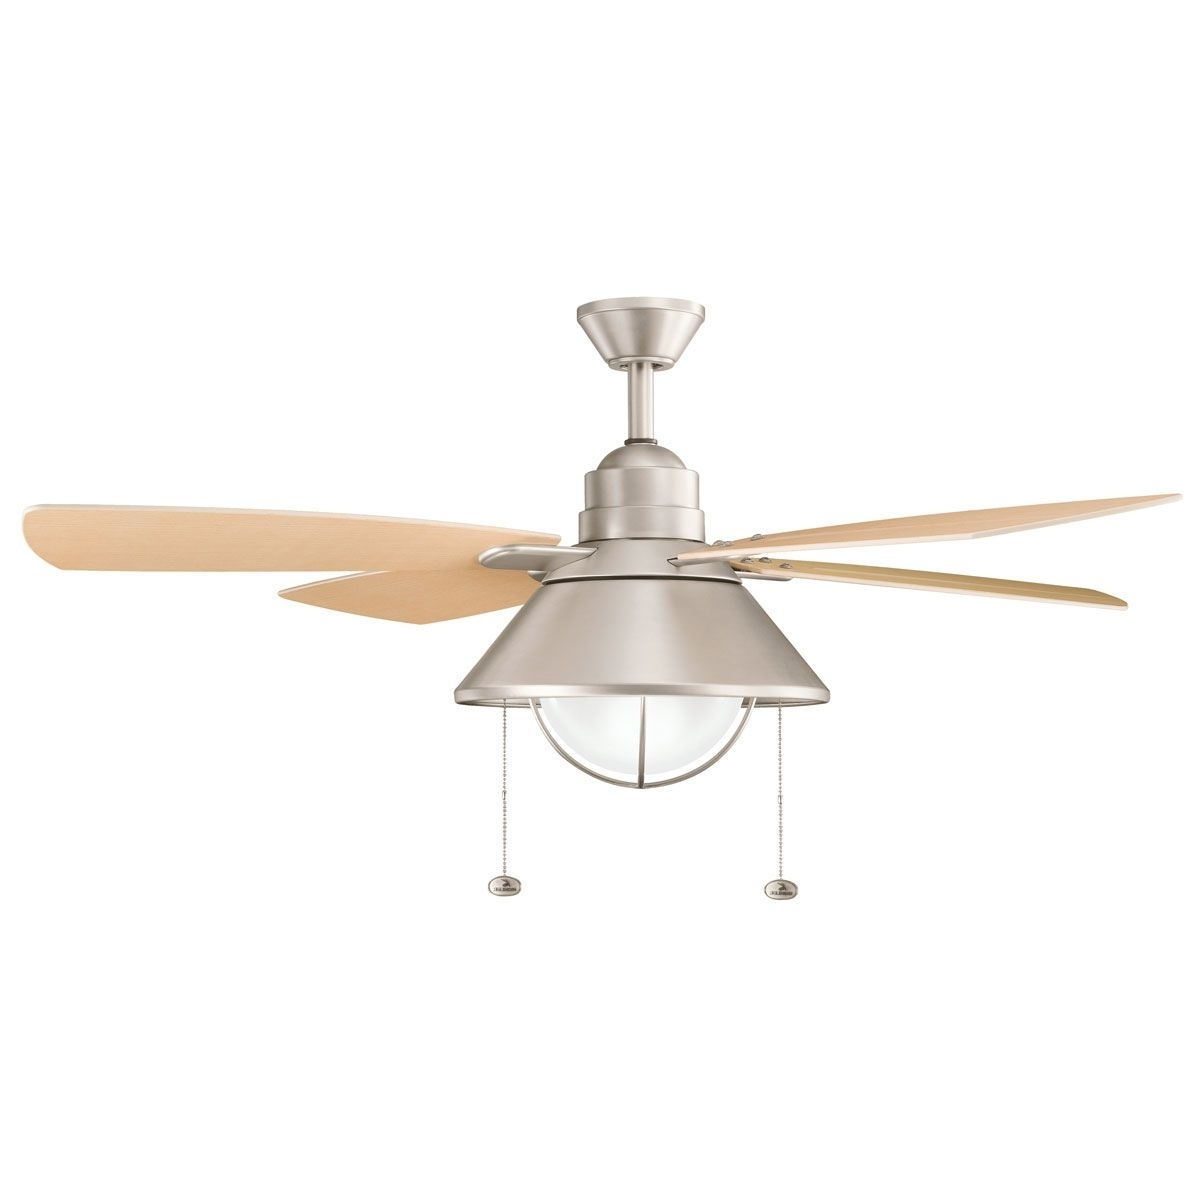 Nickel Outdoor Ceiling Fans Intended For Newest Kichler Fans Seaside Ceiling Fan In Brushed Nickel (View 15 of 20)